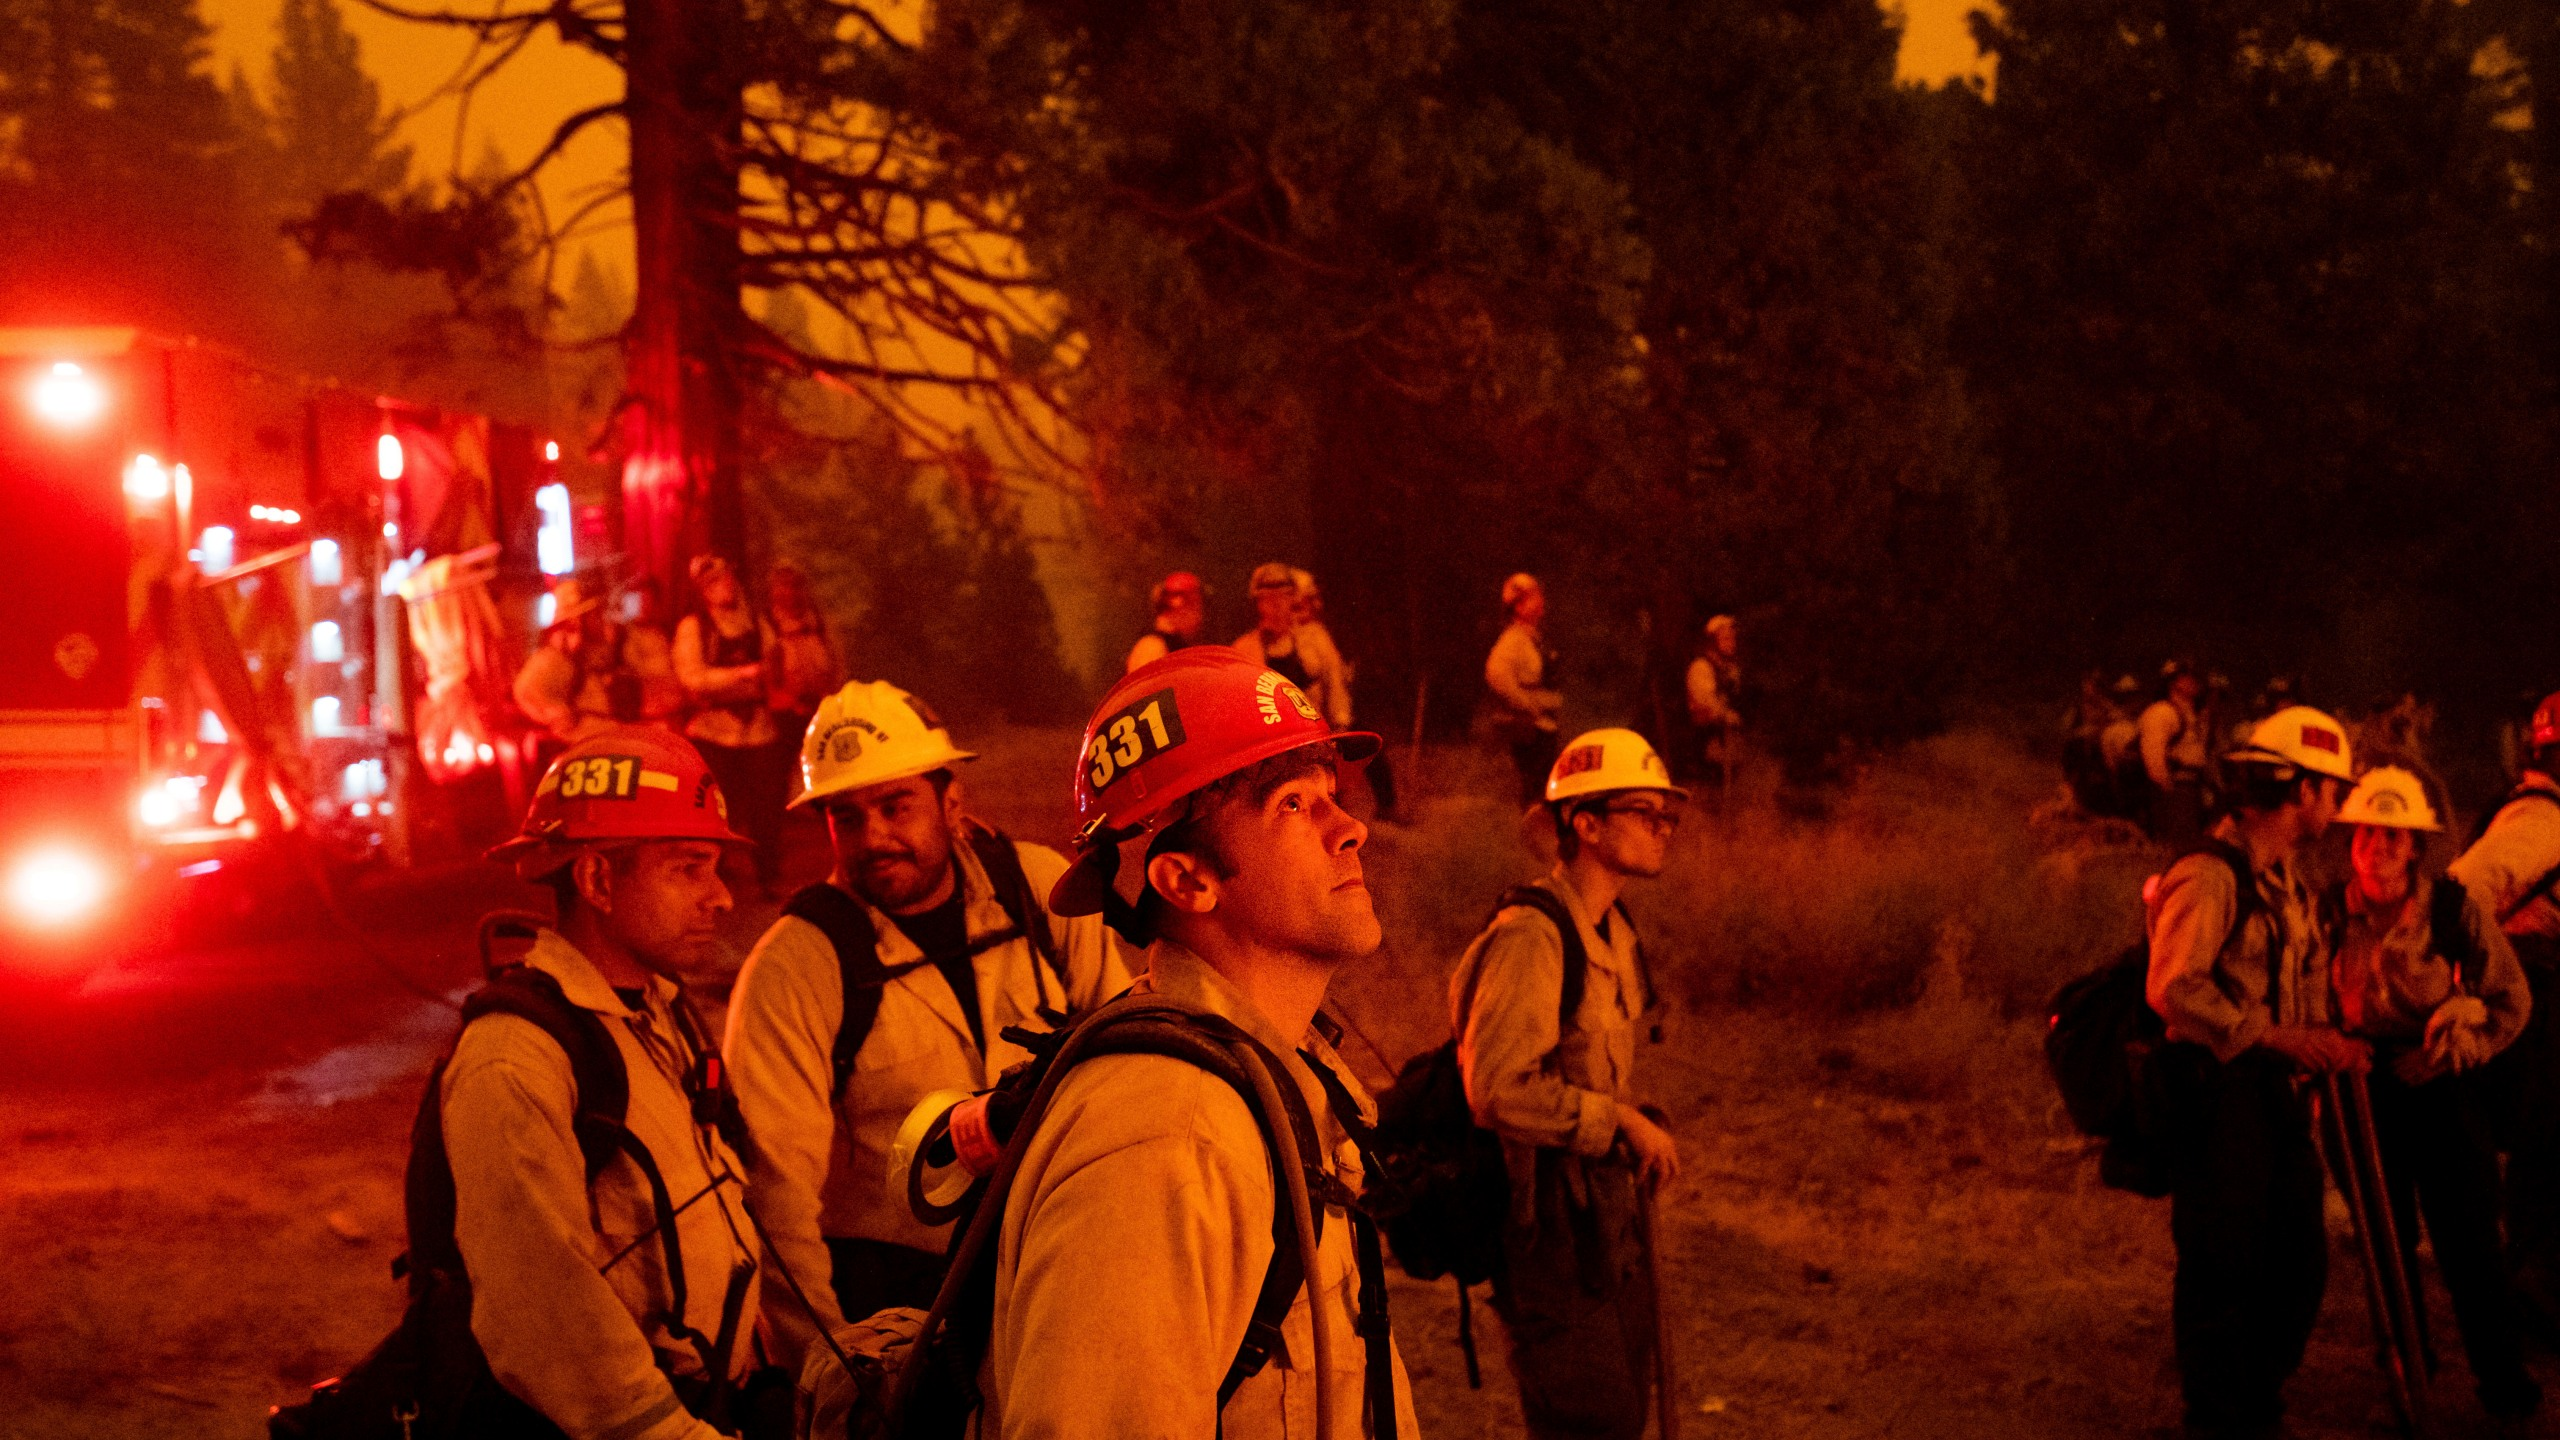 In this Thursday, Aug. 26, 2021 file photo, Capt. Adam Tinker and his crew monitor a firing operation, where crews burn vegetation to create a control line, while battling the Caldor Fire in Eldorado National Forest. (AP Photo/Noah Berger, File)